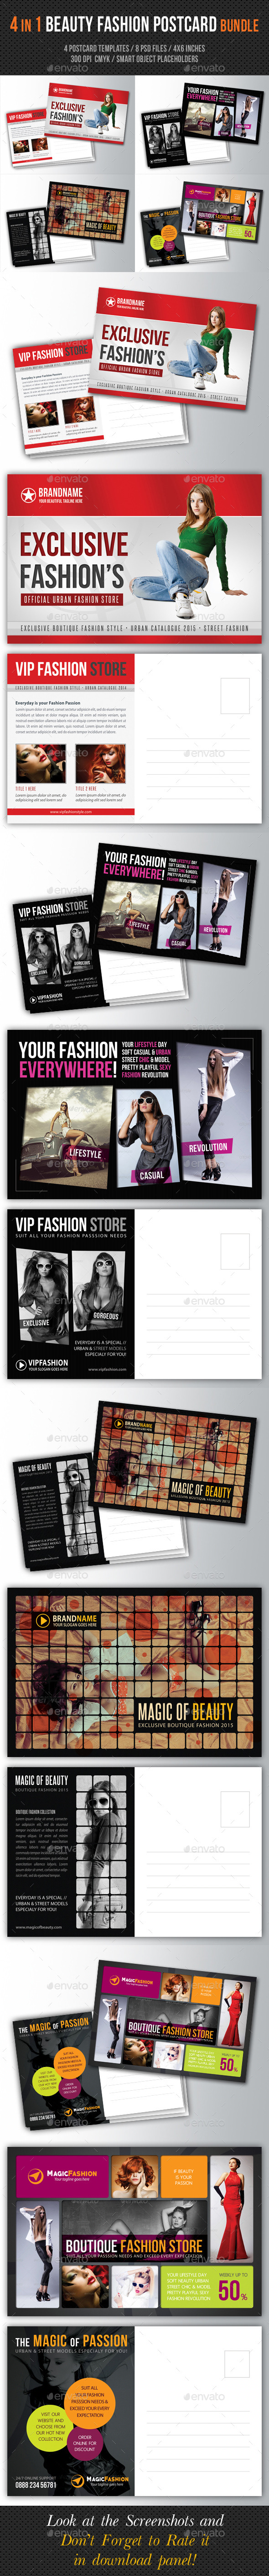 GraphicRiver 4 in 1 Fashion and Beauty Postcard Template Bundle 10251698